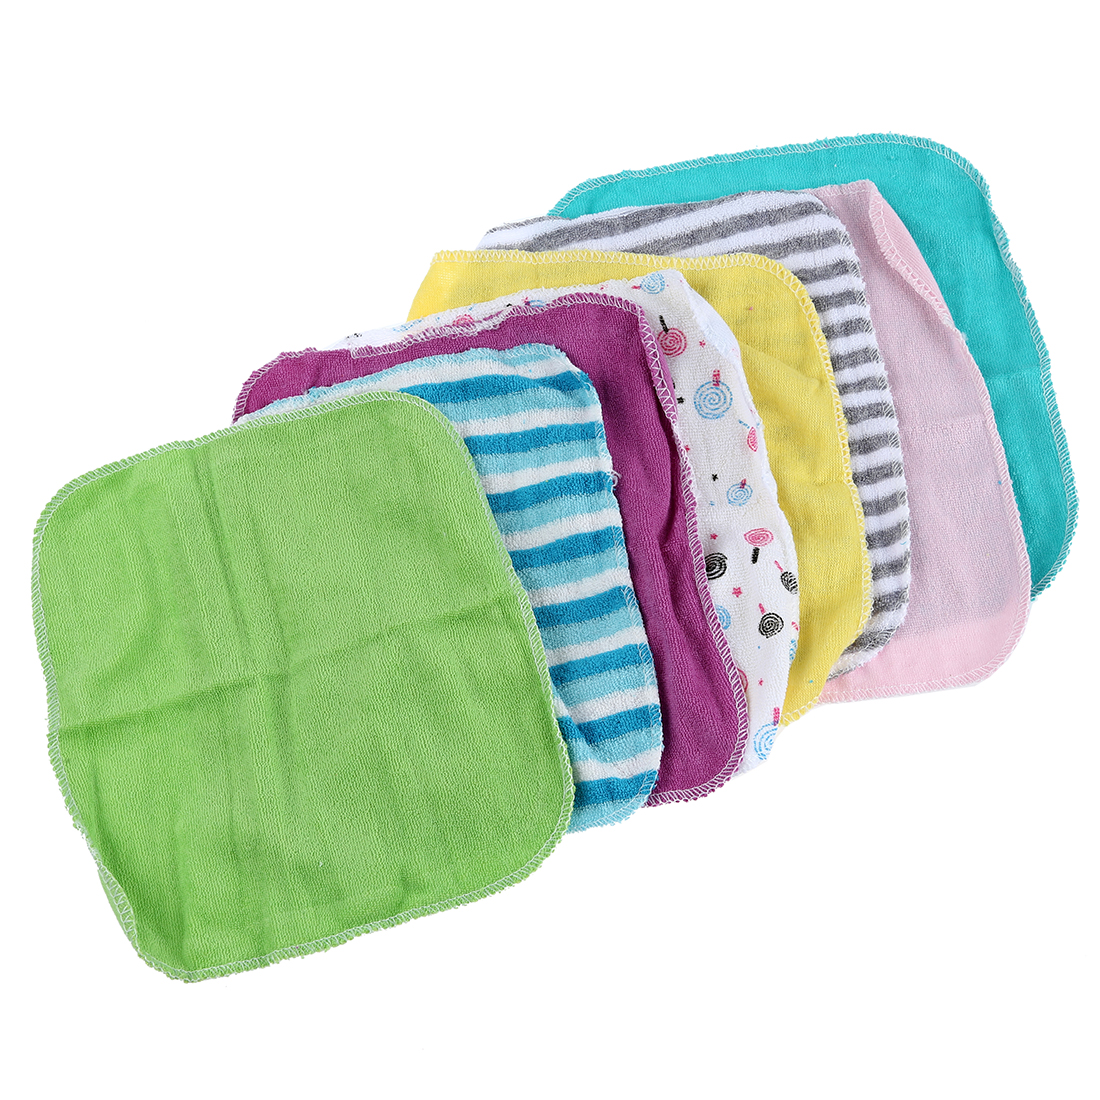 New Baby Face Washers Hand Towels Cotton Wipe Wash Cloth 8pcs/Pack